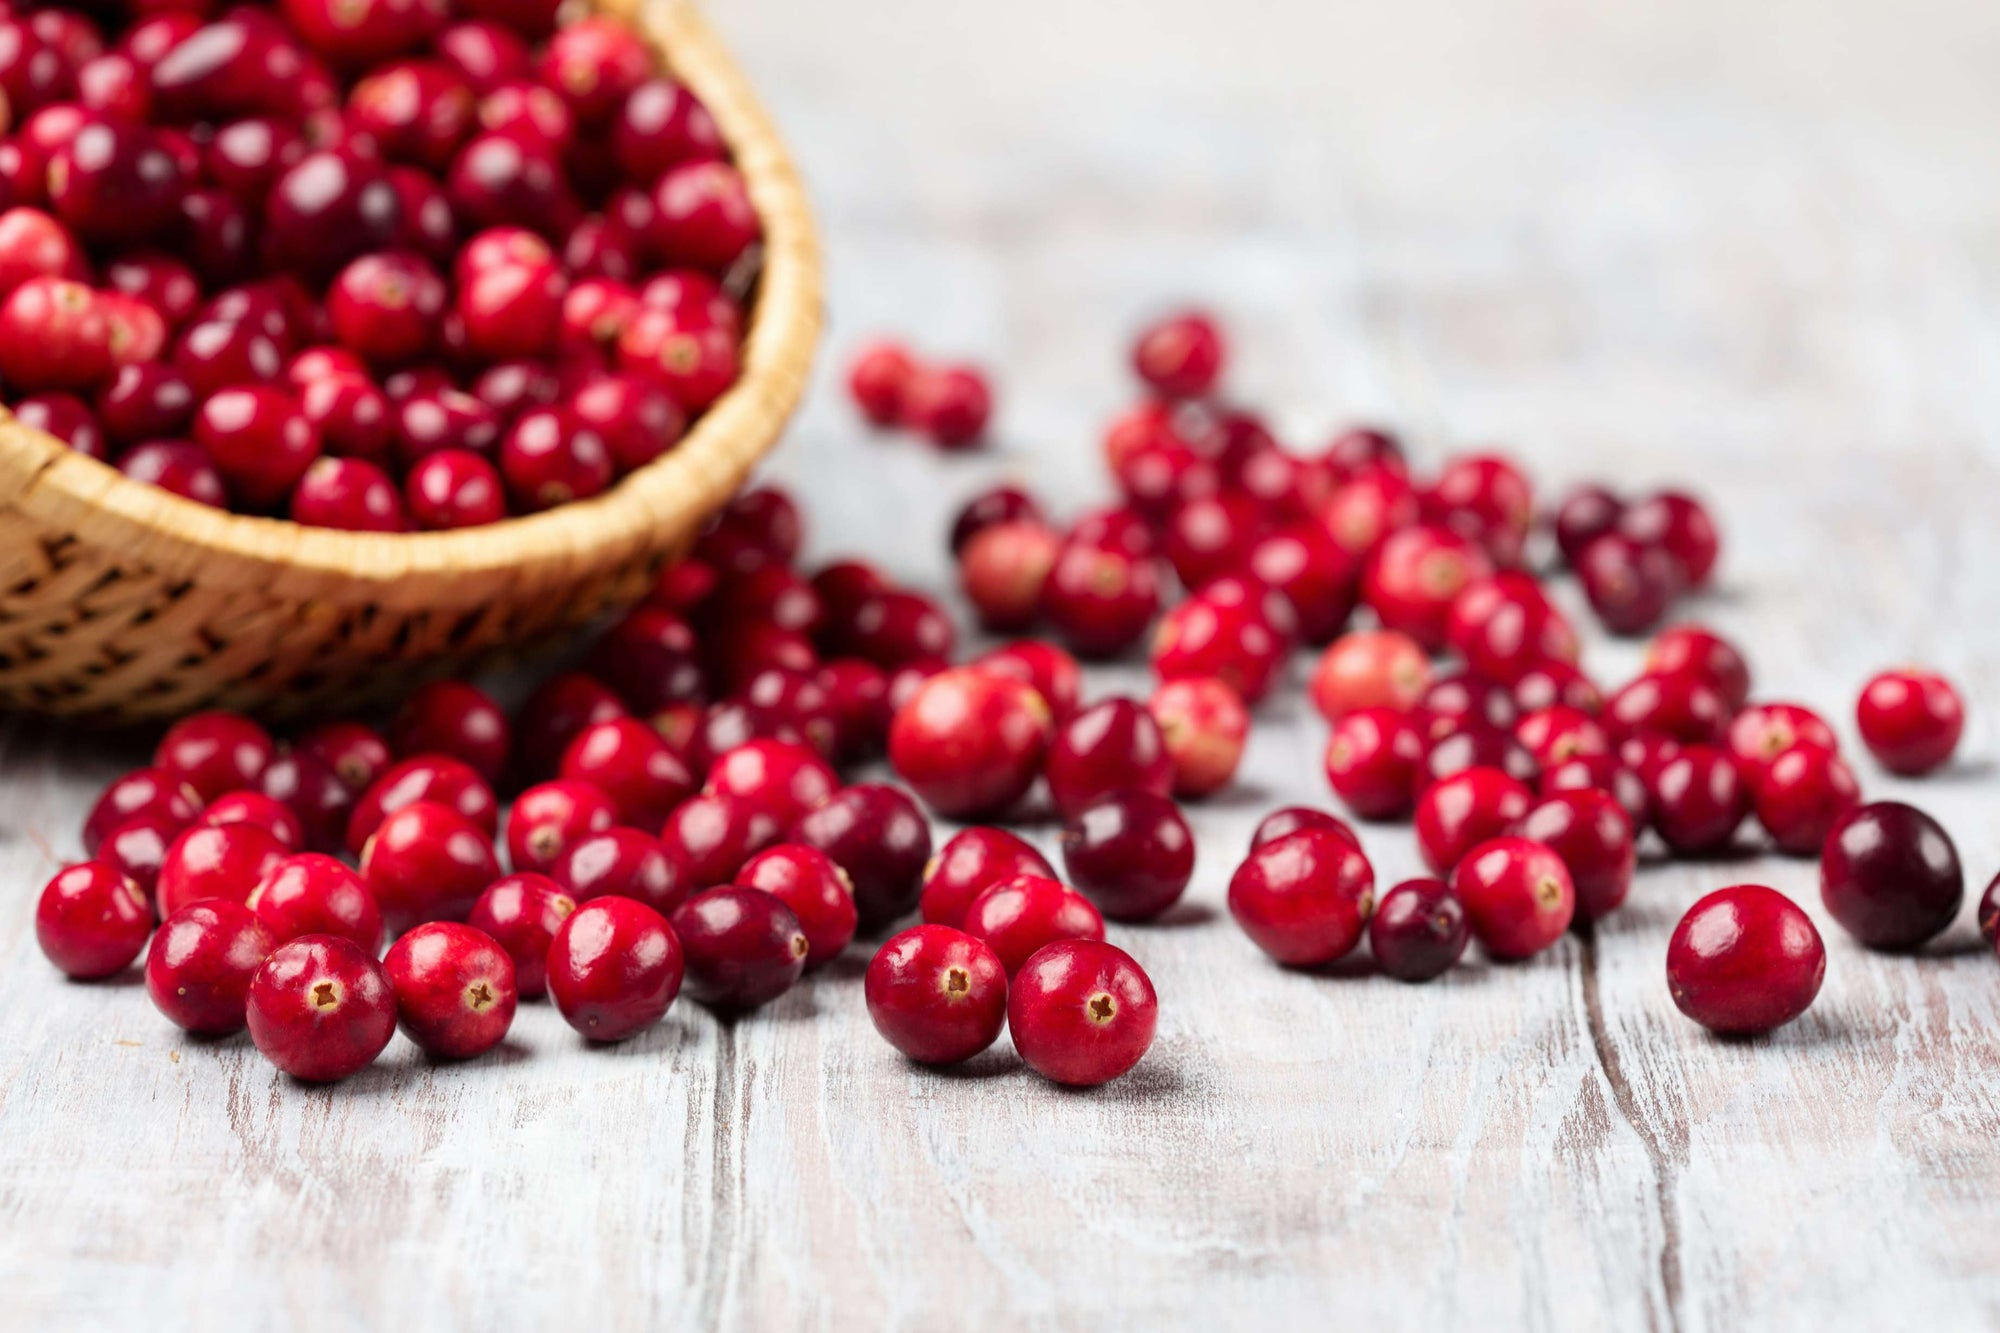 6 Lesser Known Benefits of Cranberries